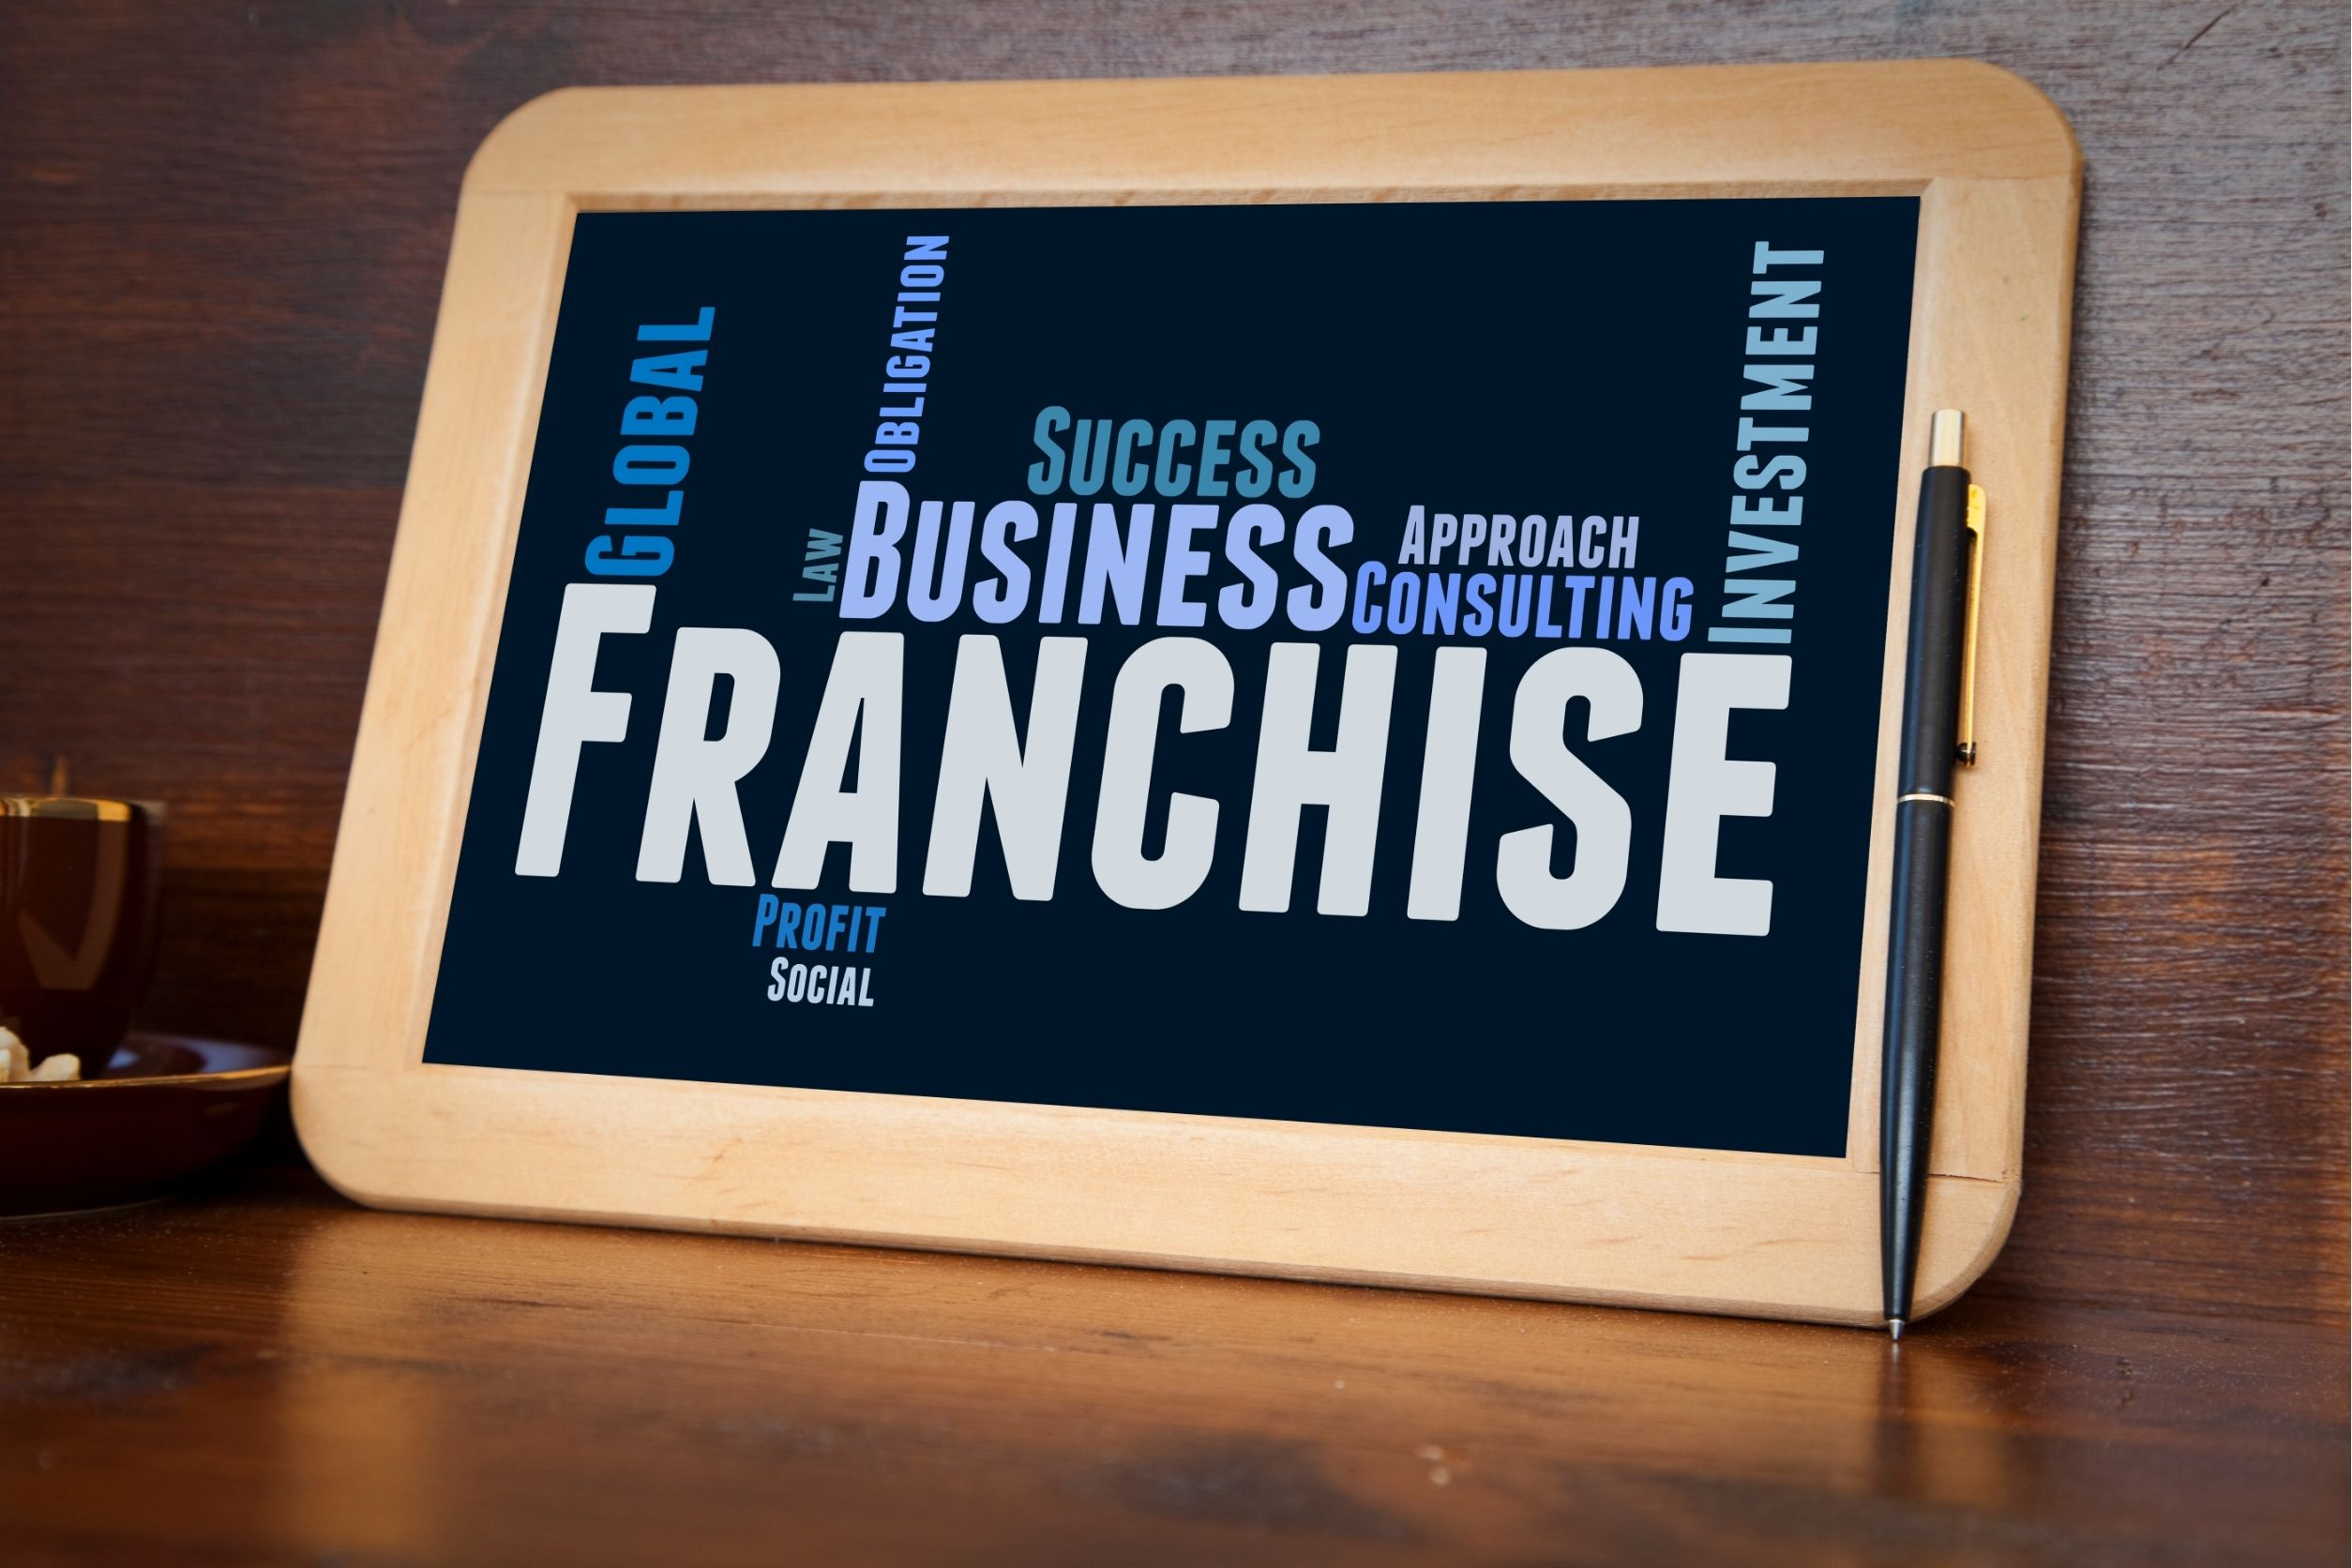 Franchise business image concept displayed on tablet next to pen